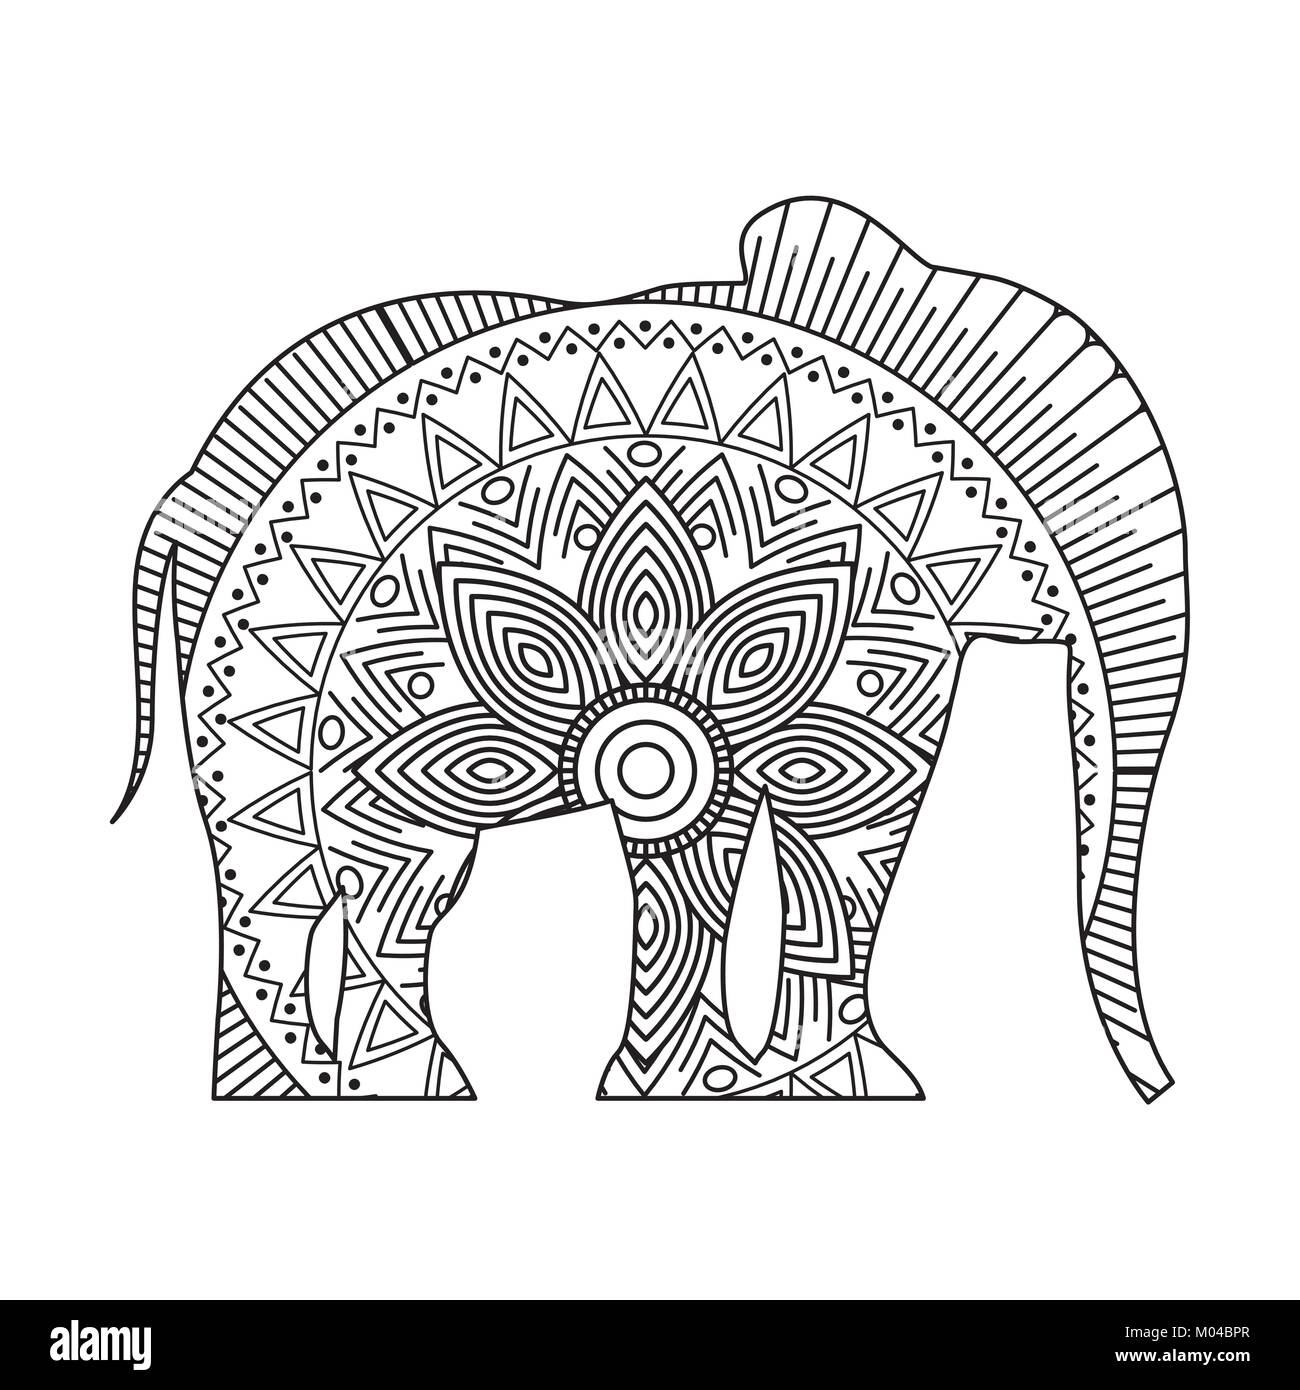 Zentangle Elefant Vorlage Vector Illustration Coloring Page African Stockfotos